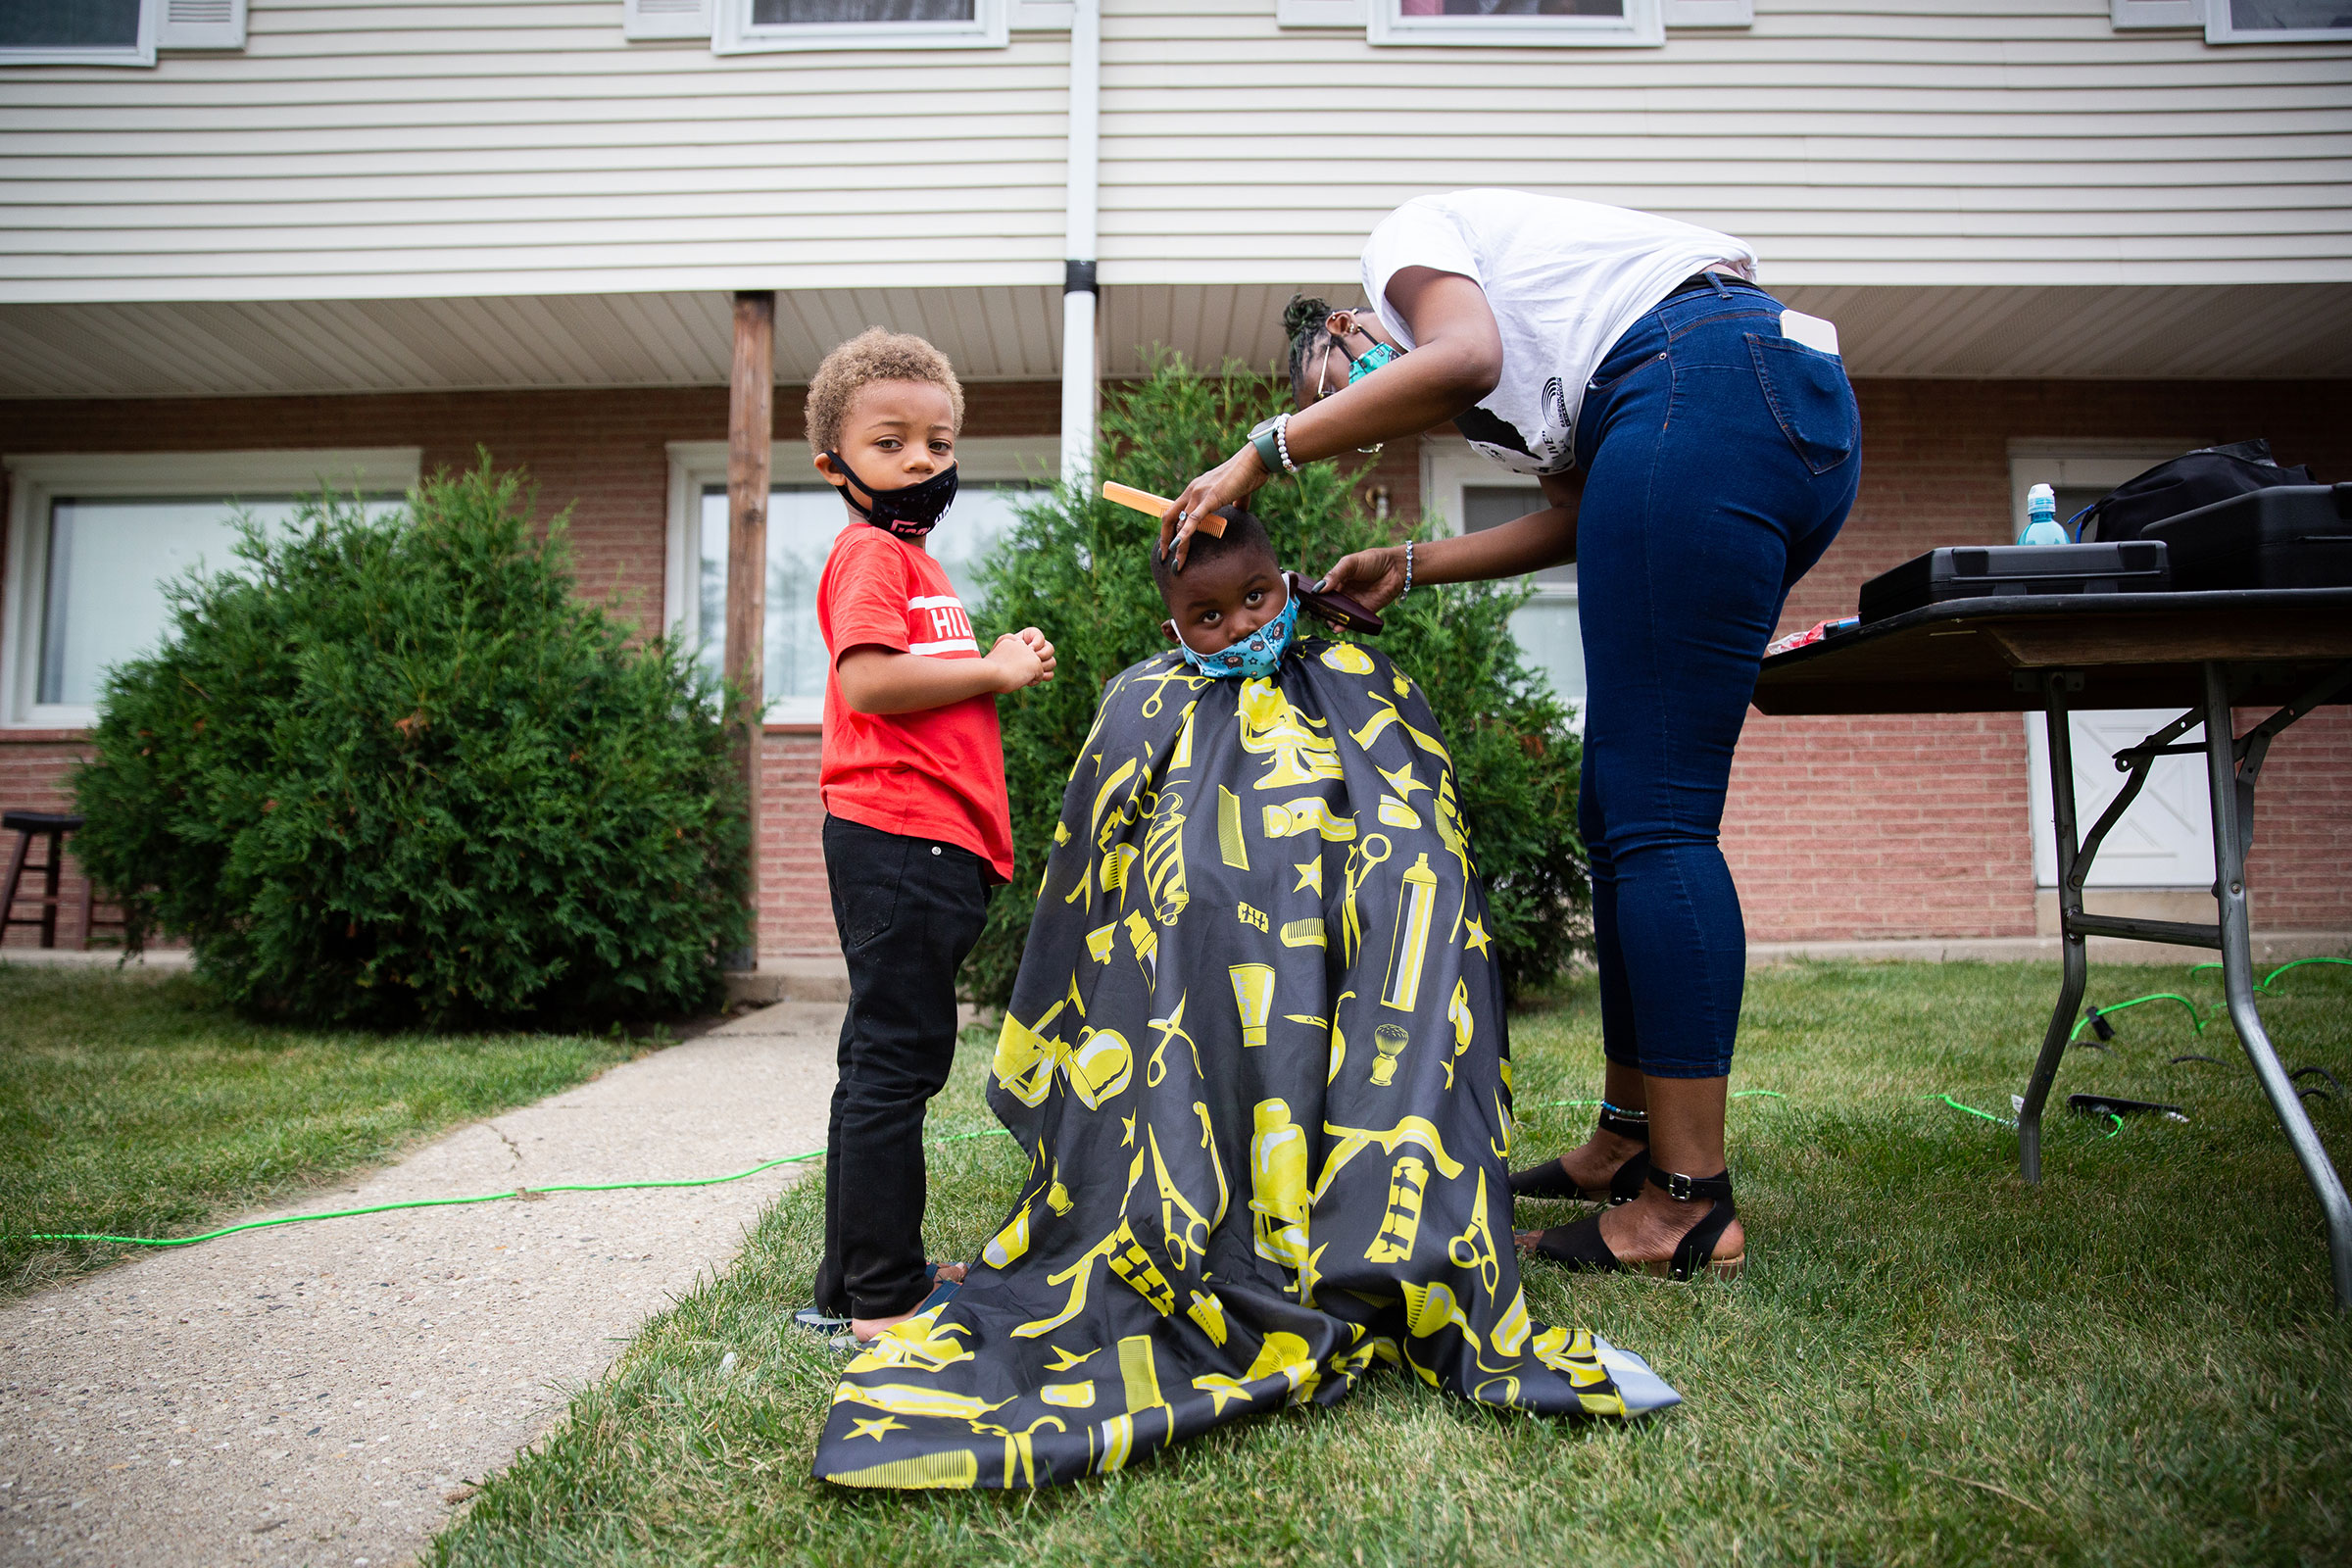 A young boy gets his haircut at the community gathering hosted by Jacob Blake's family in Kenosha, Wis., on Sept. 1, 2020.